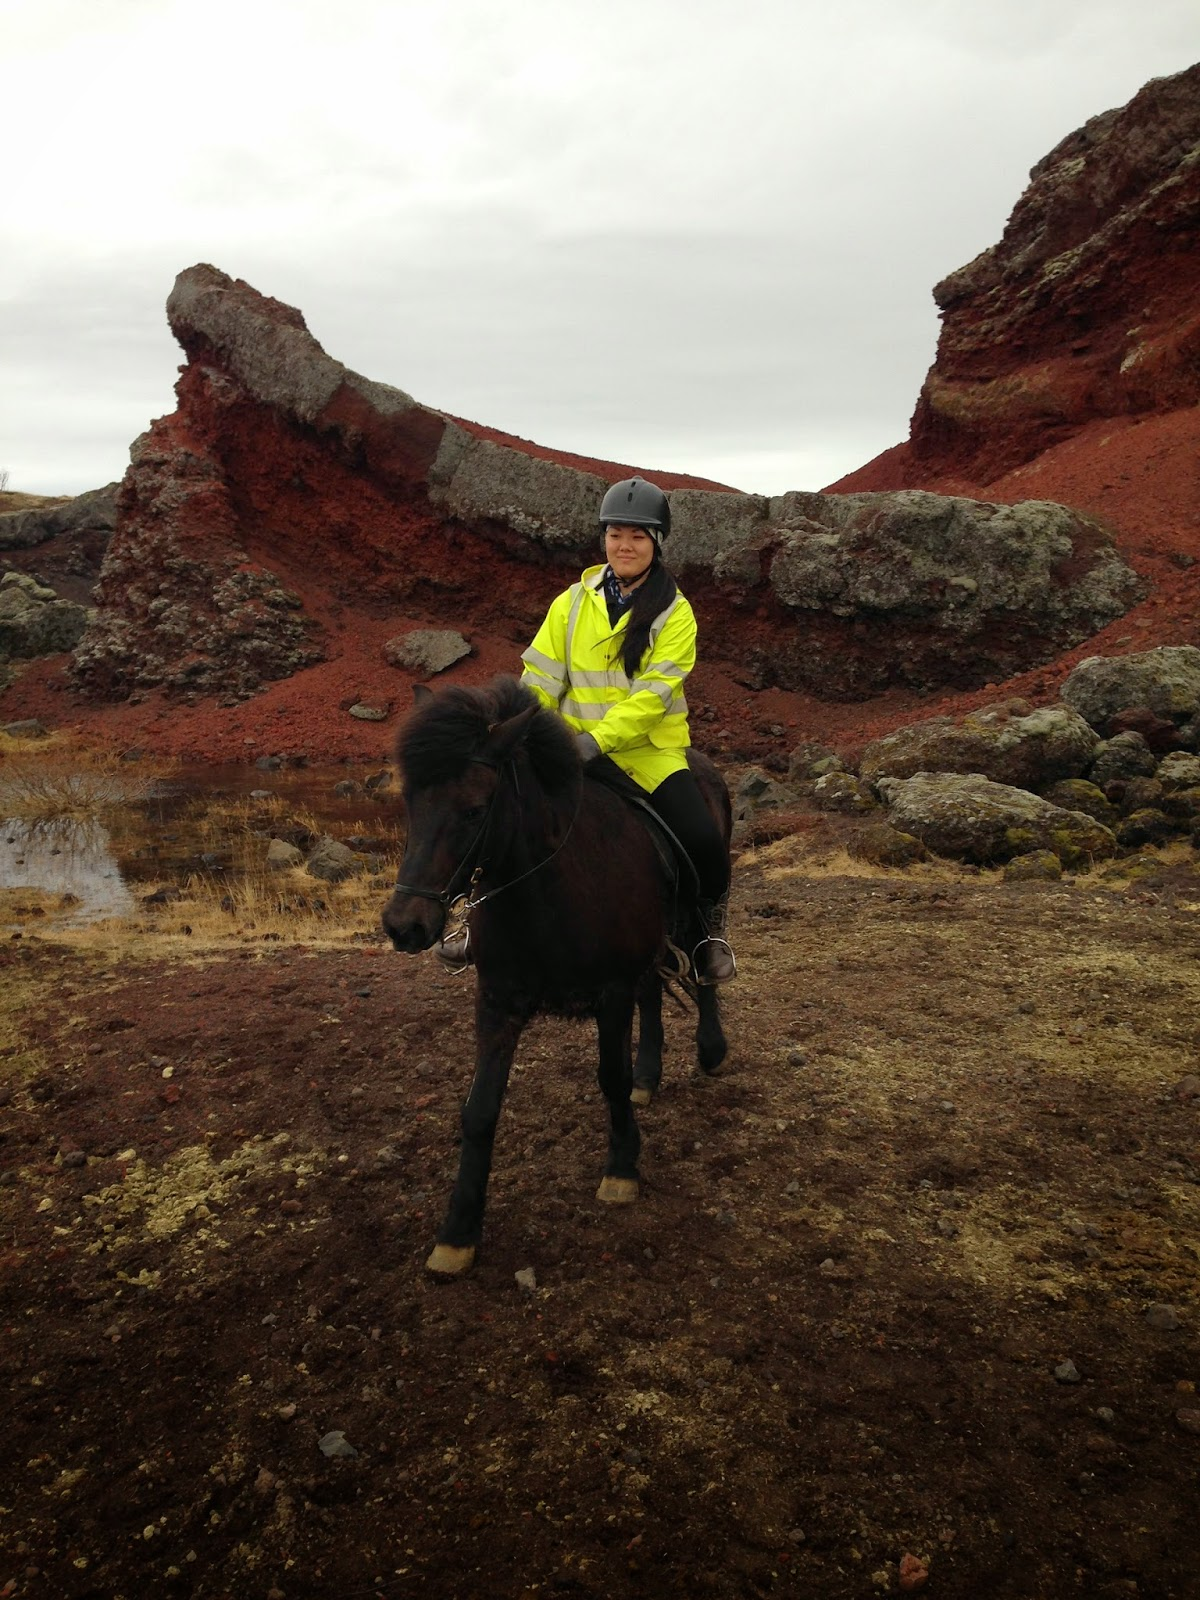 Horse back riding through the lava fields